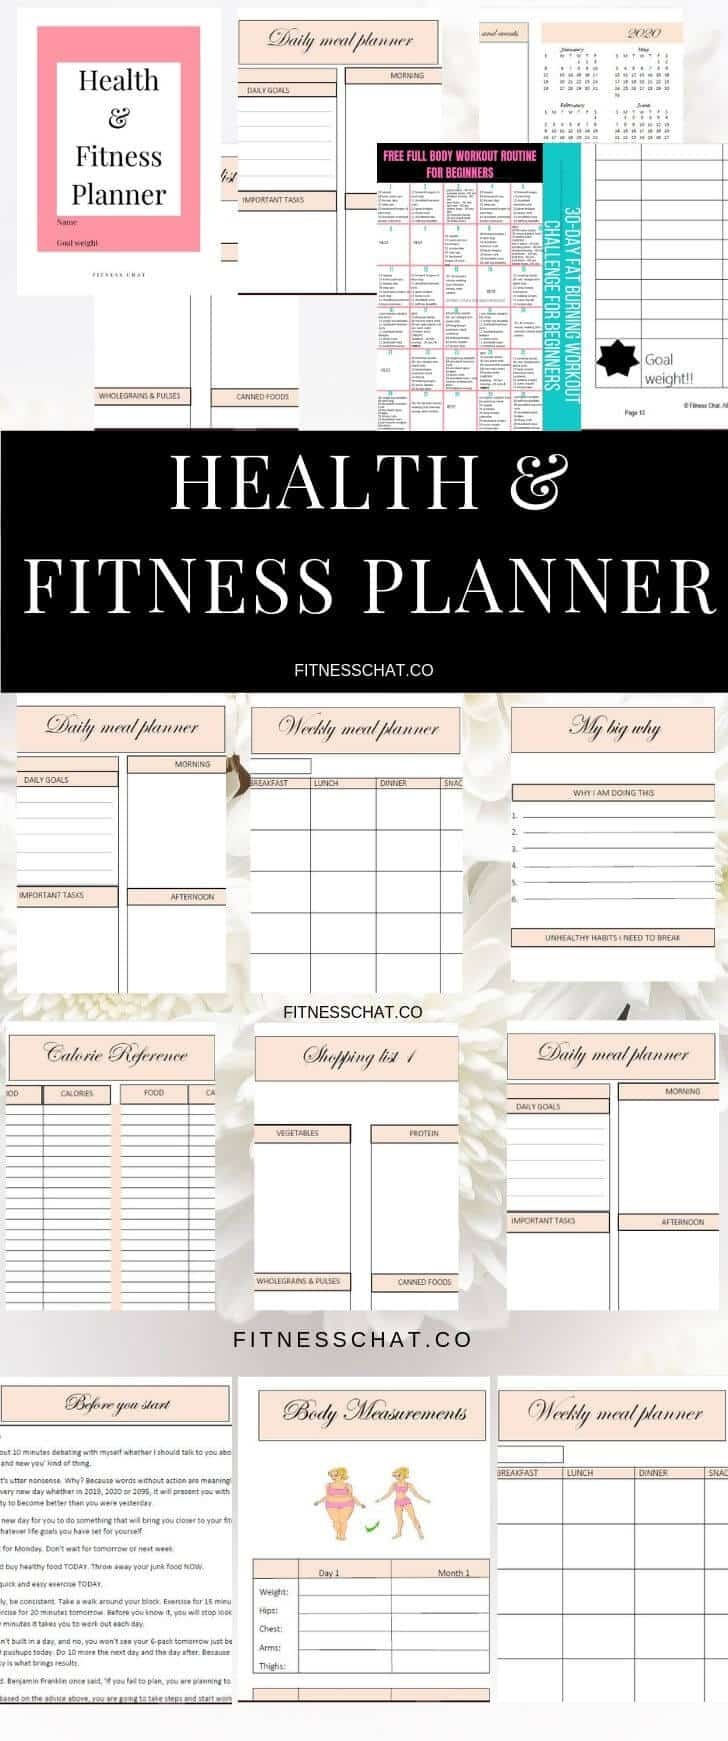 best weight loss tips. fitness printable diet and workout tracker